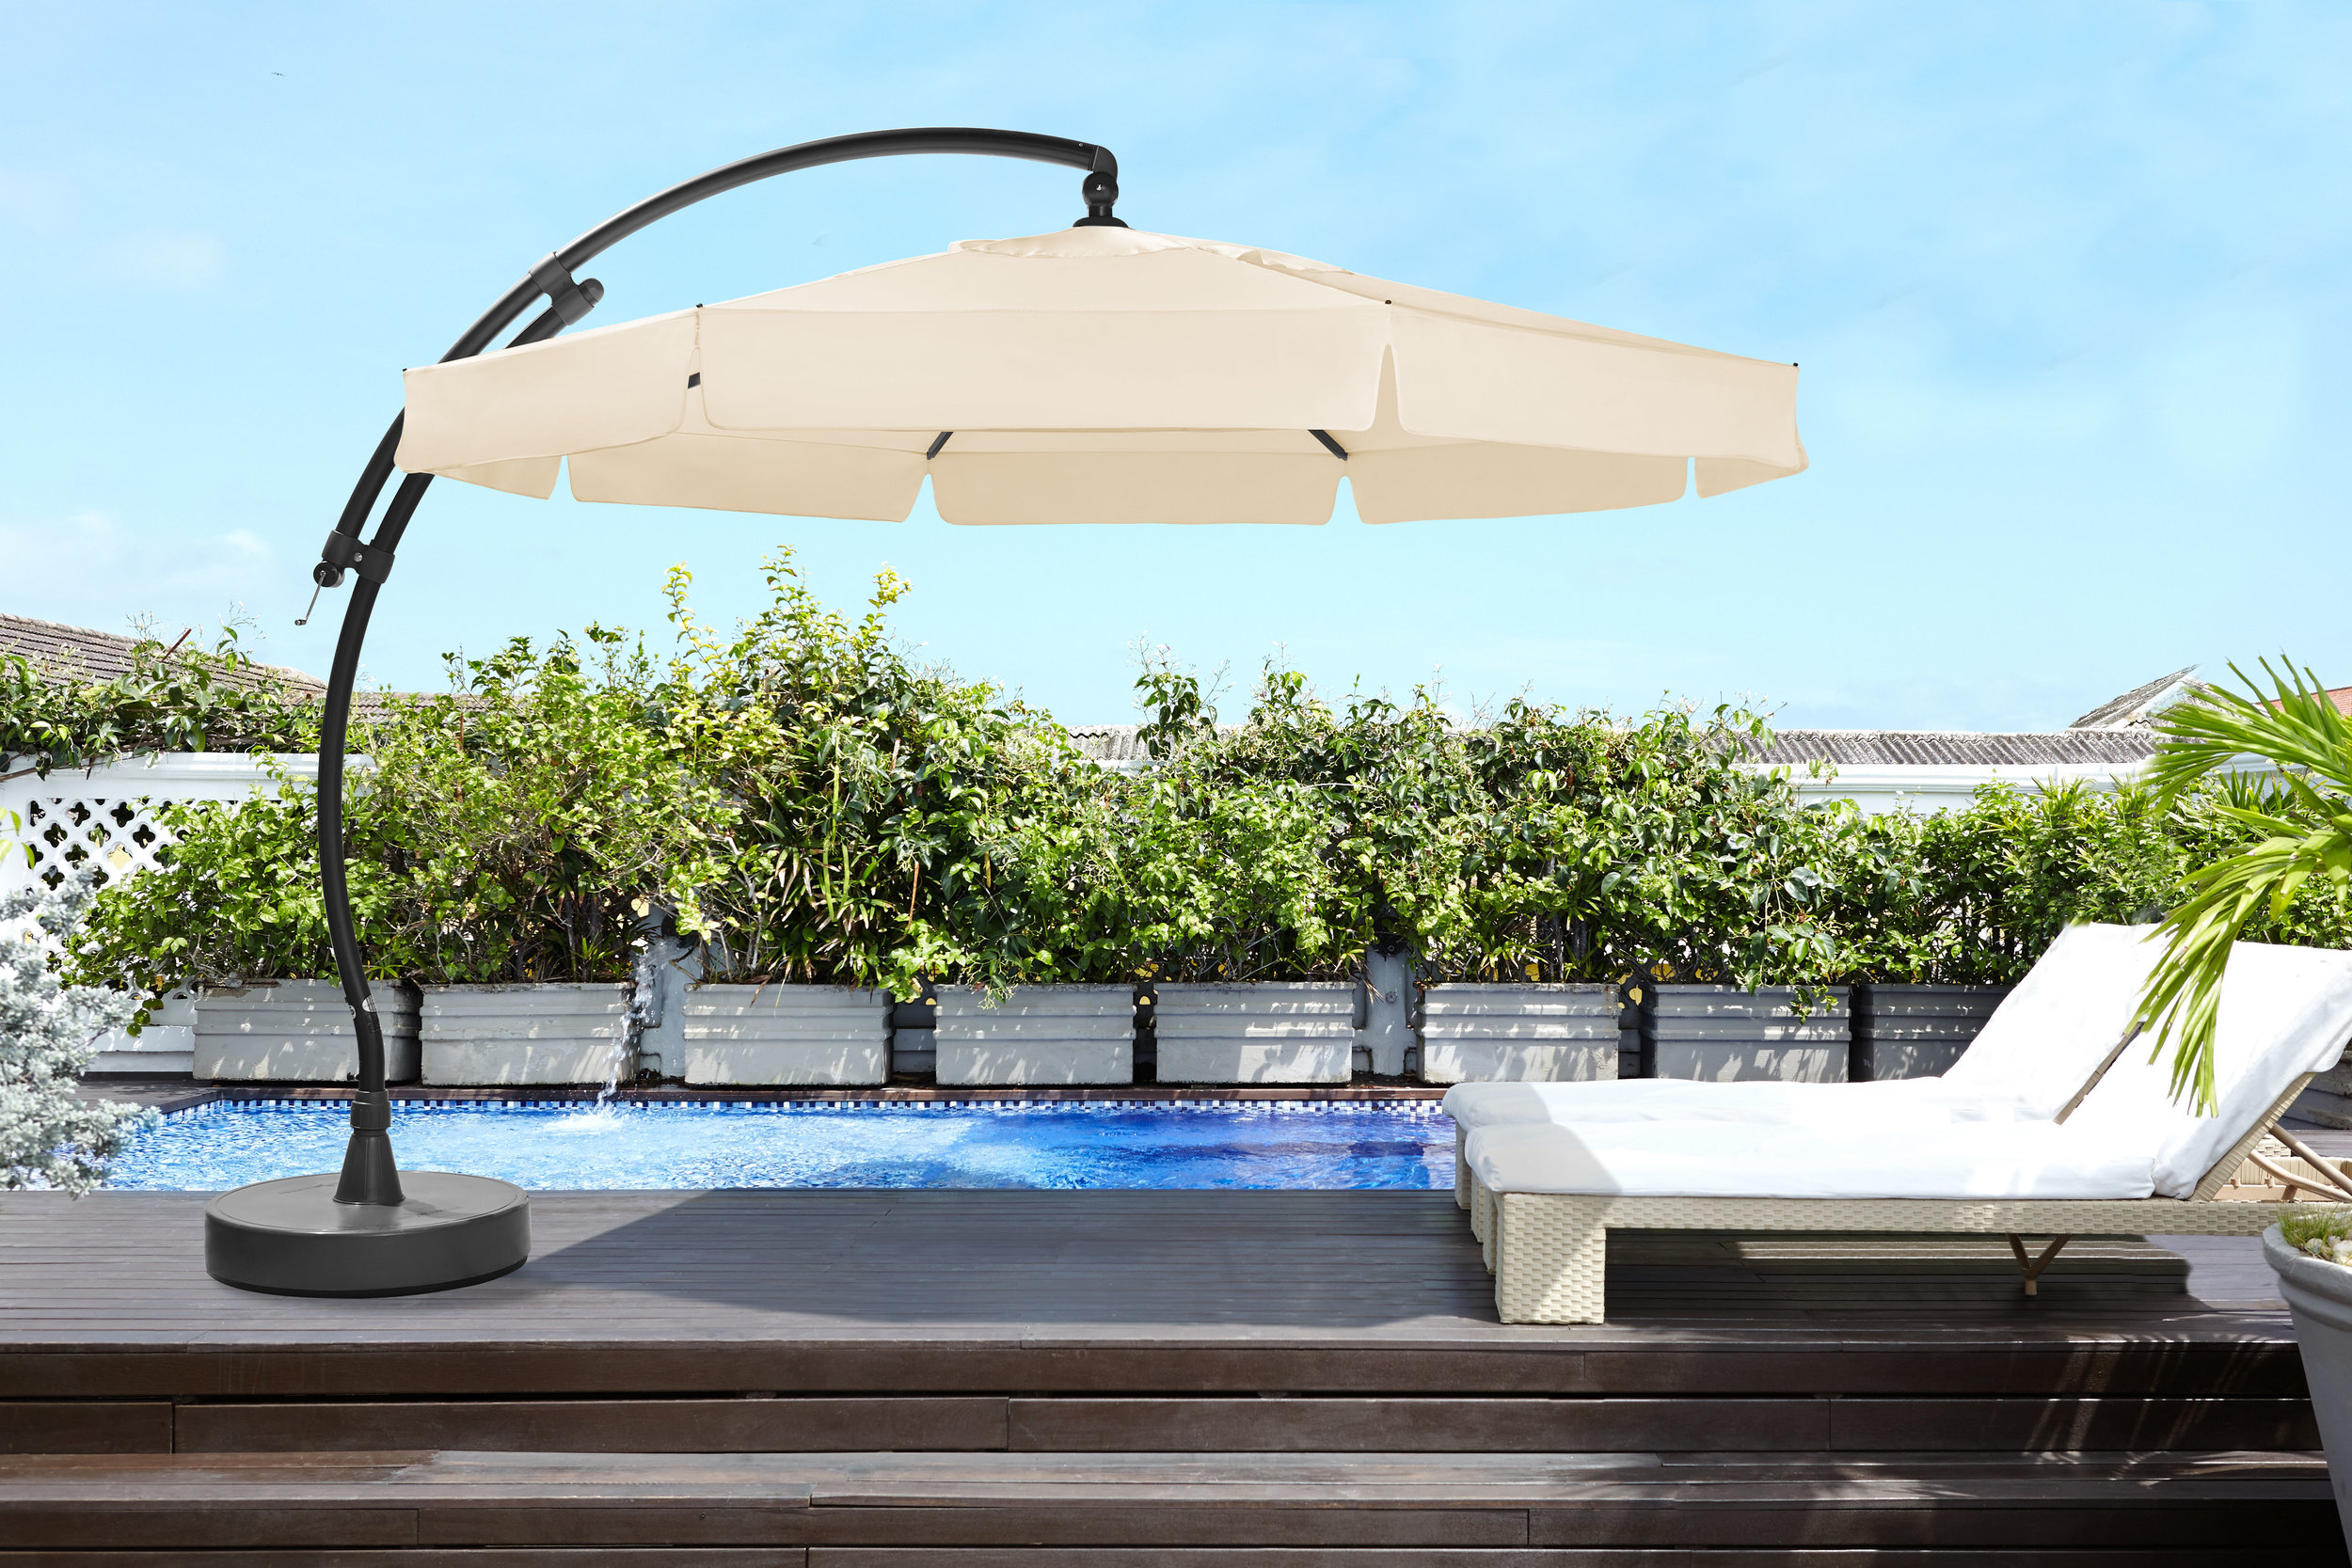 sun garden usa sun garden umbrella patio parasol umbrella. Black Bedroom Furniture Sets. Home Design Ideas